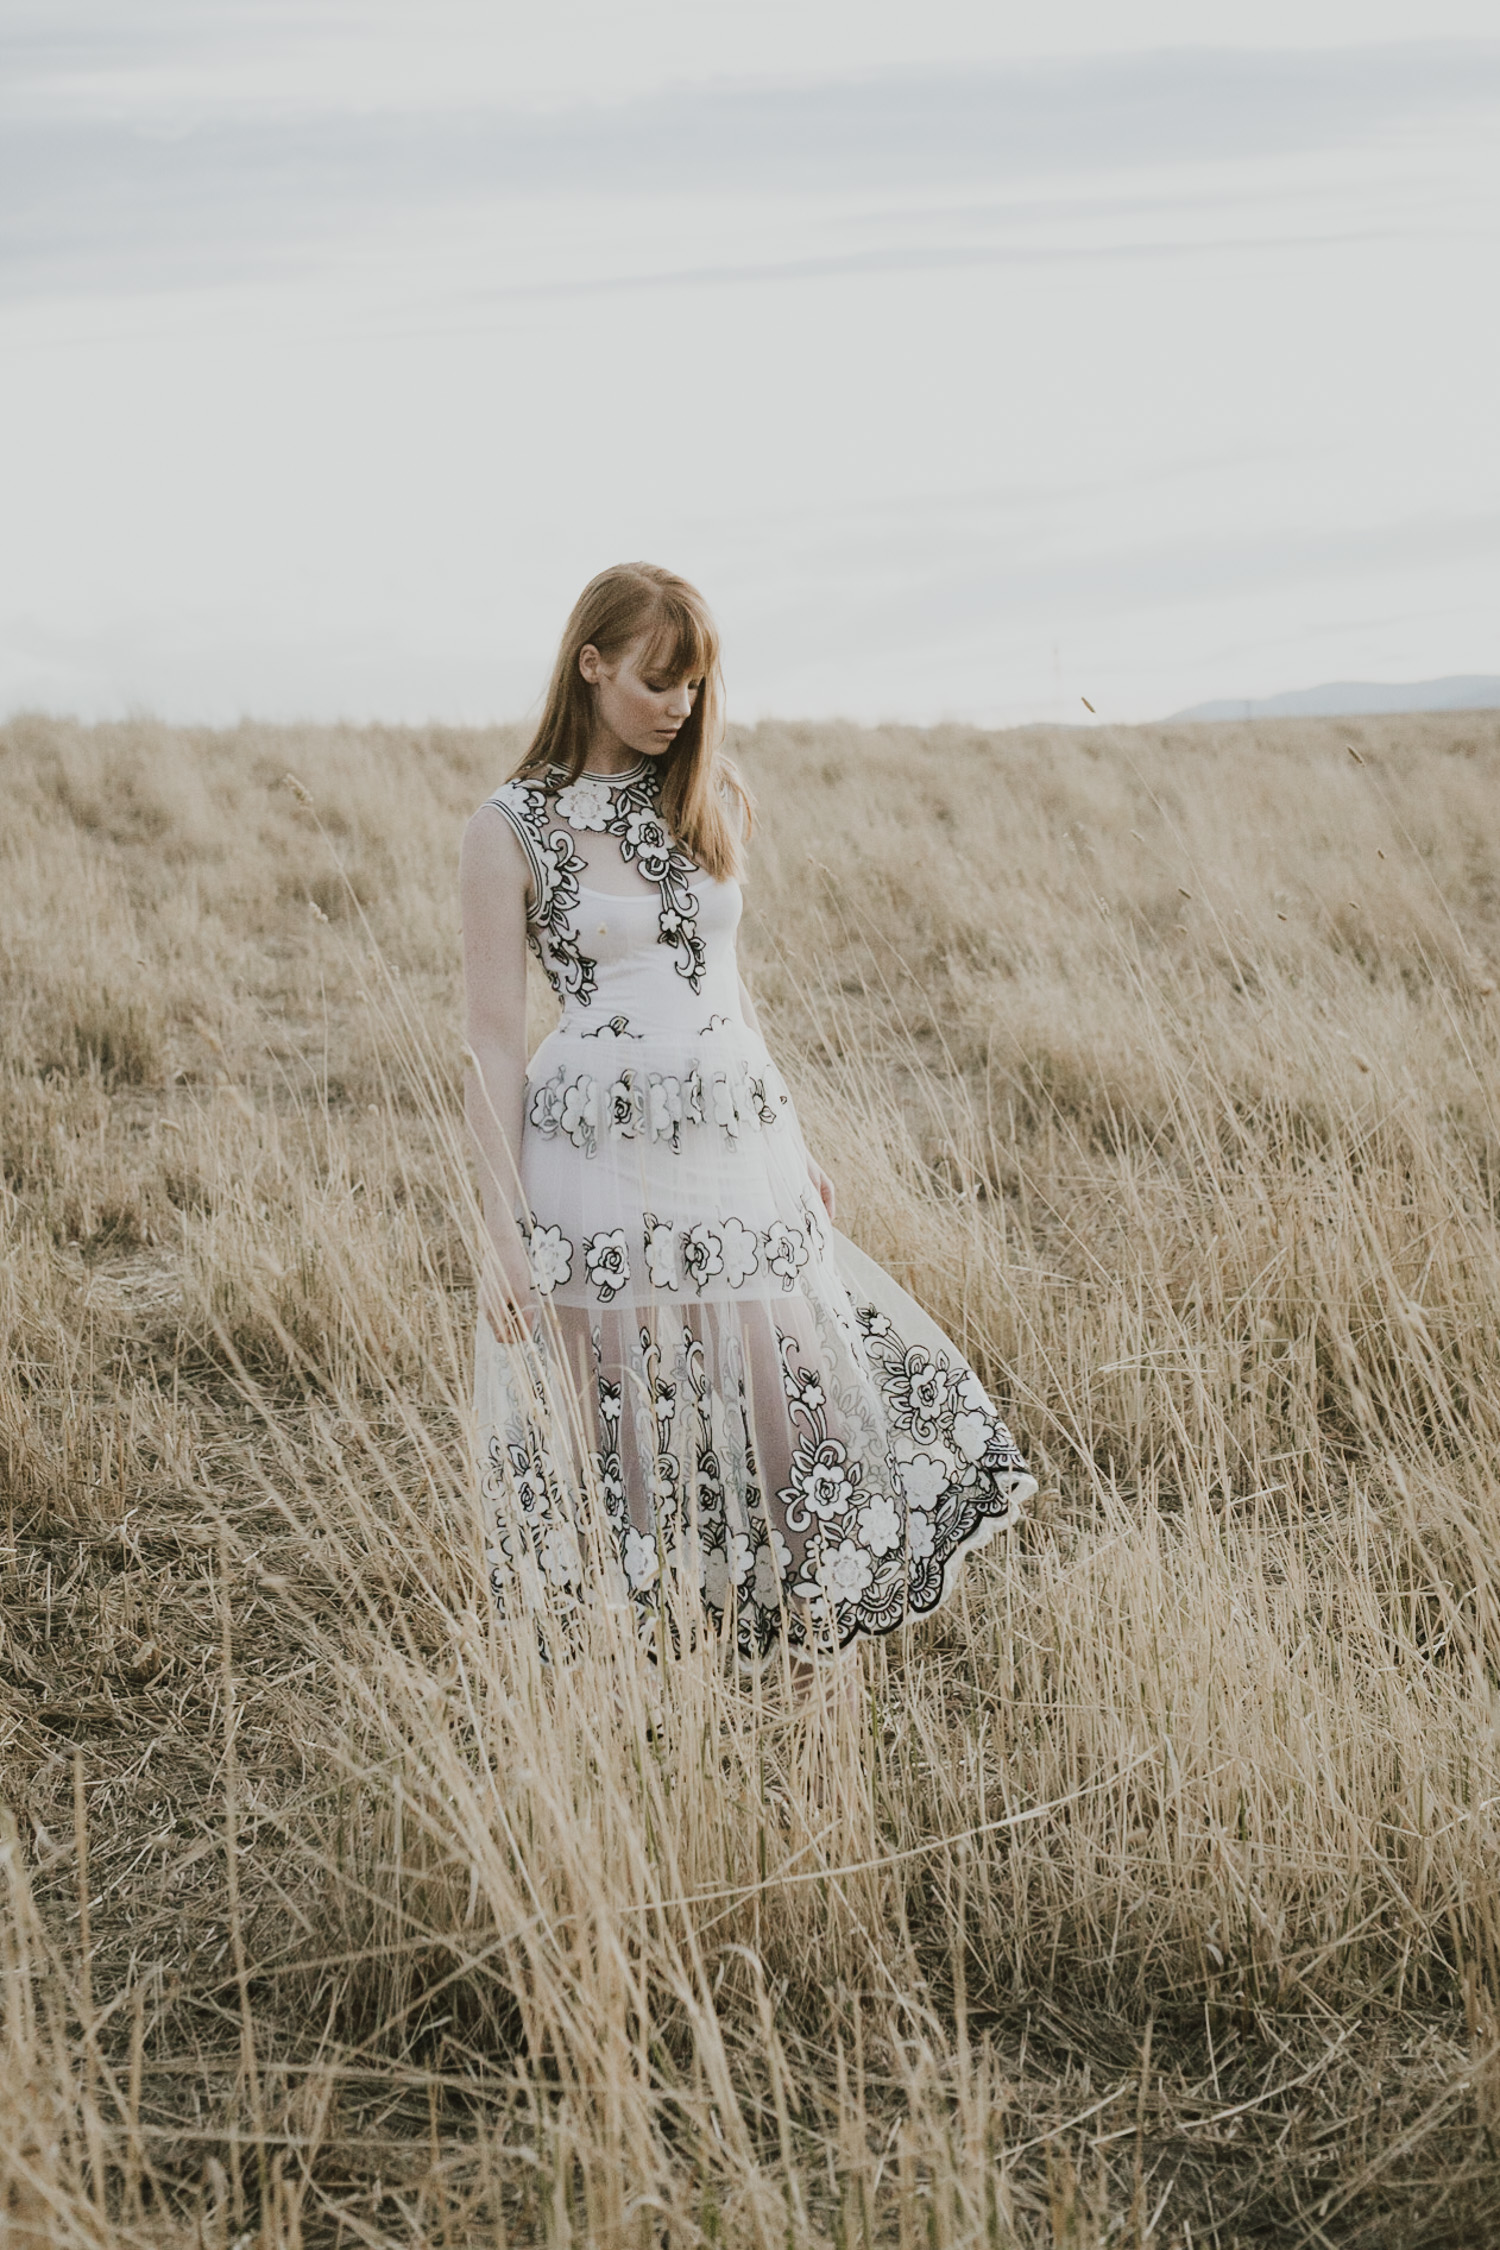 Editorial portrait shoot published in Big Ink Magazine, shot in a large open field in Canberra